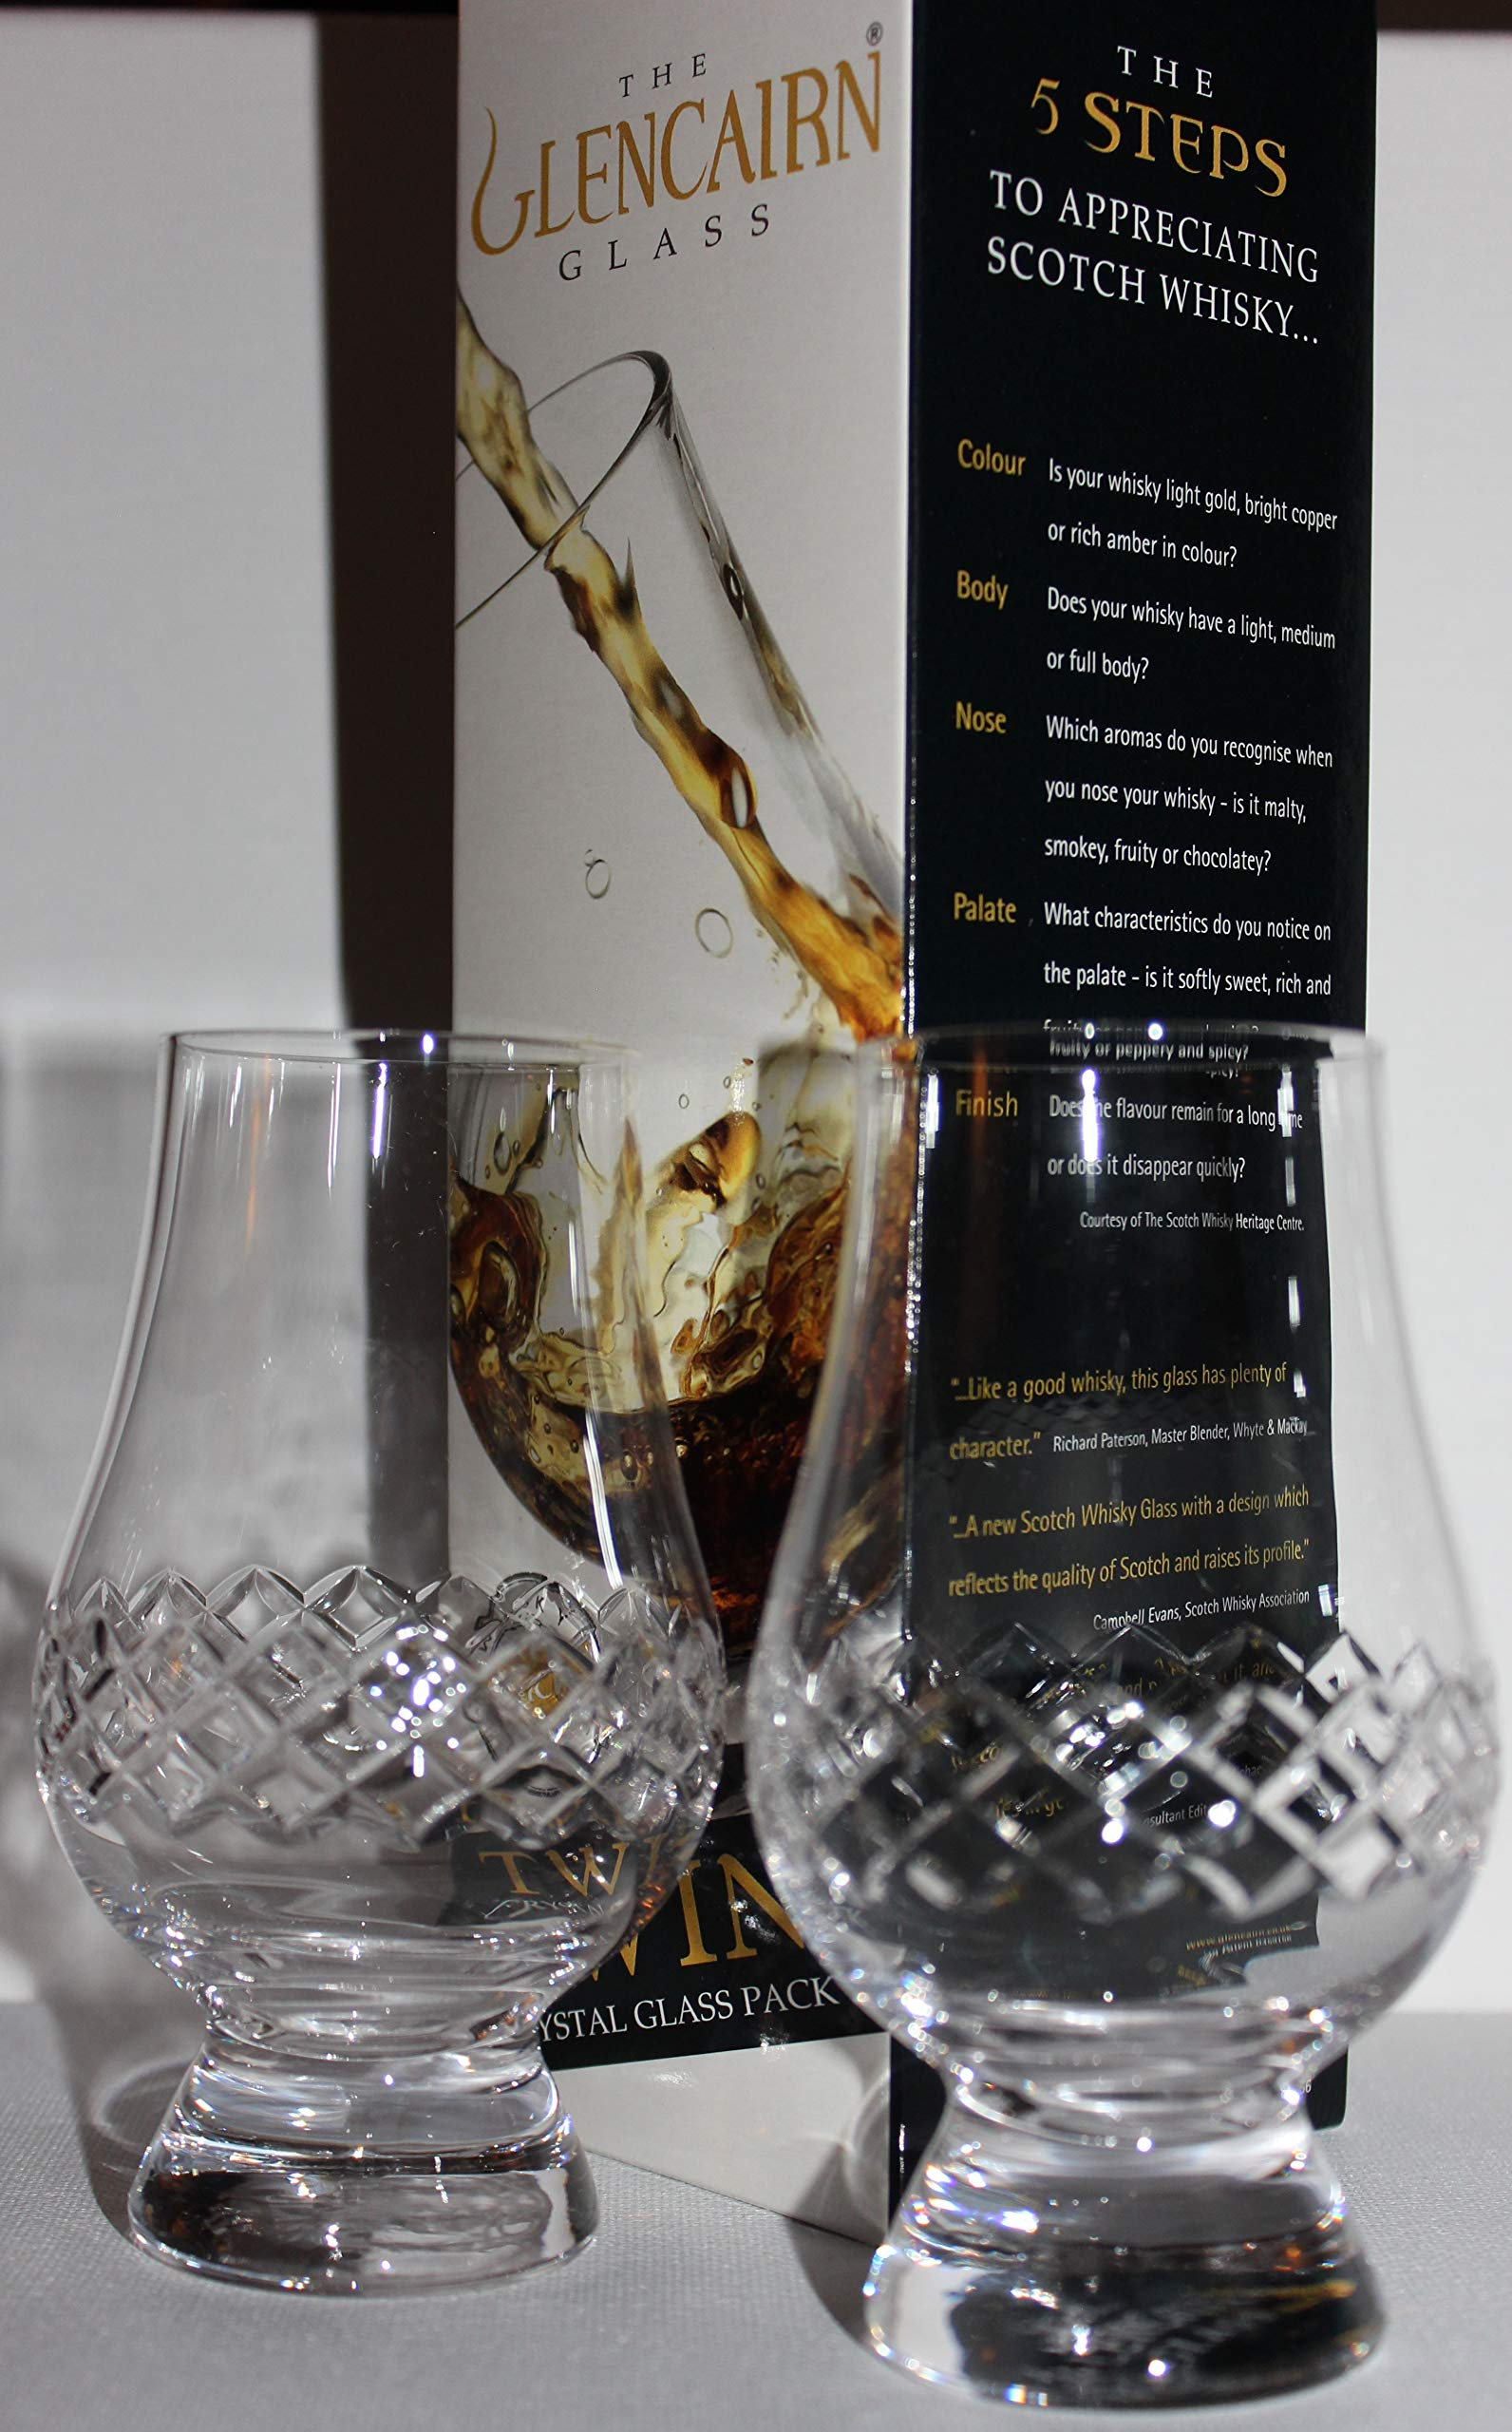 THE GLENCAIRN DIAMOND CUT TWIN PACK GLENCAIRN SCOTCH MALT WHISKY TASTING GLASSES